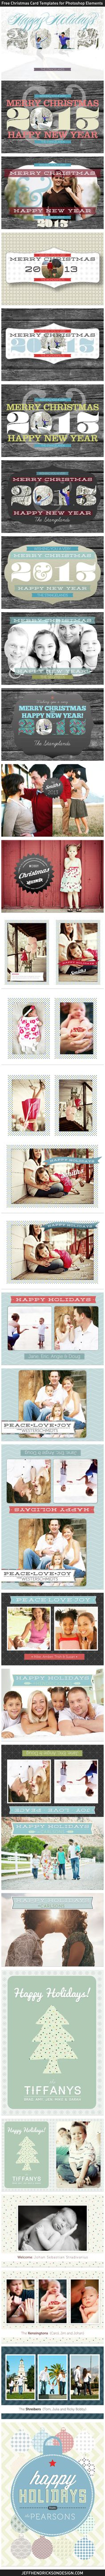 29 Free Christmas / Holiday card templates for Photoshop Elements.  Hi-res, printable 7x5 & 5x7.     @Kaeleigh Melton Mae